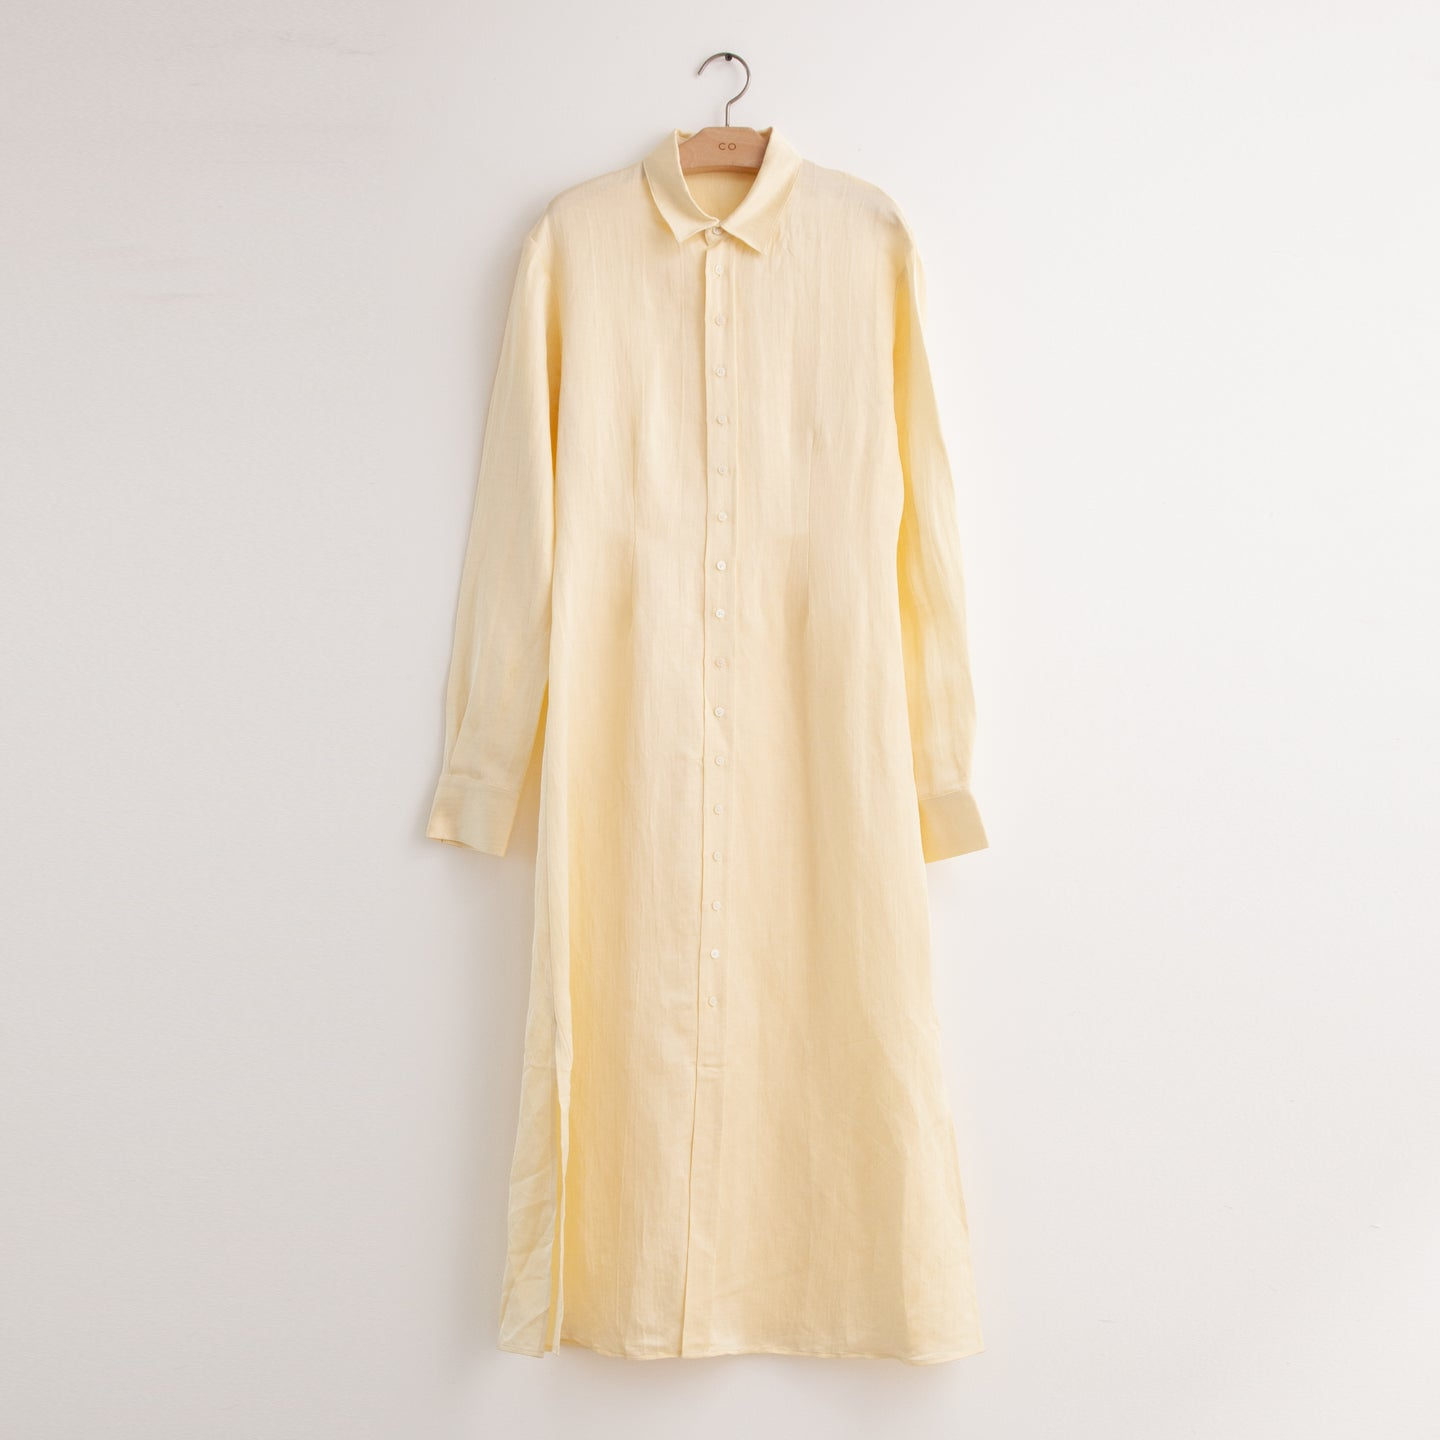 CO - Long sleeve button front shirtdress in buttercream crinkle silk